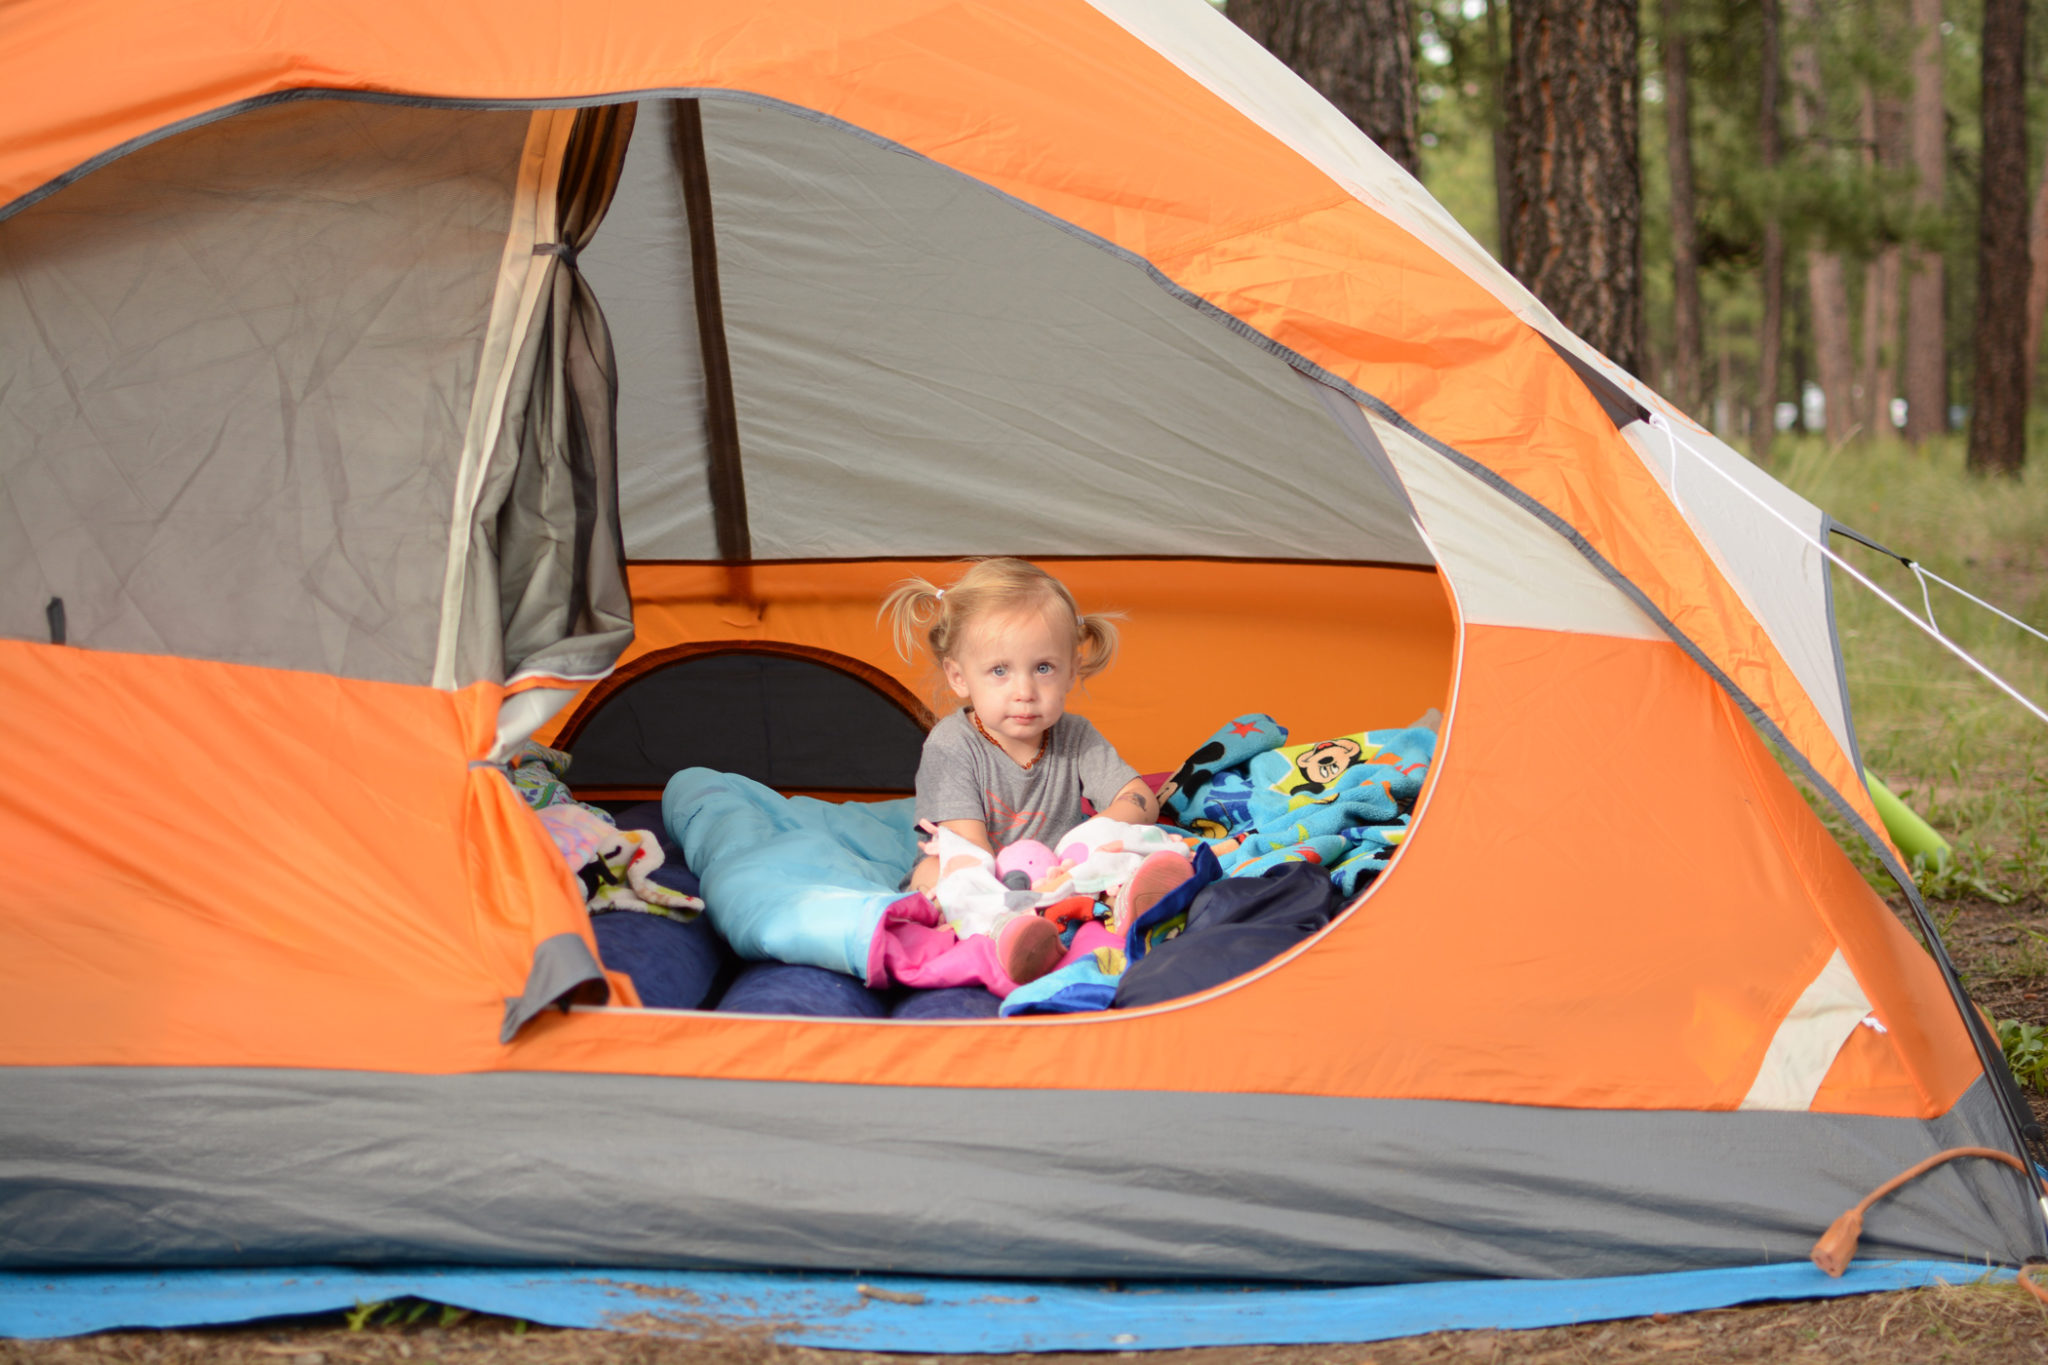 Little girl with blonde pigtails sitting inside an orange tent